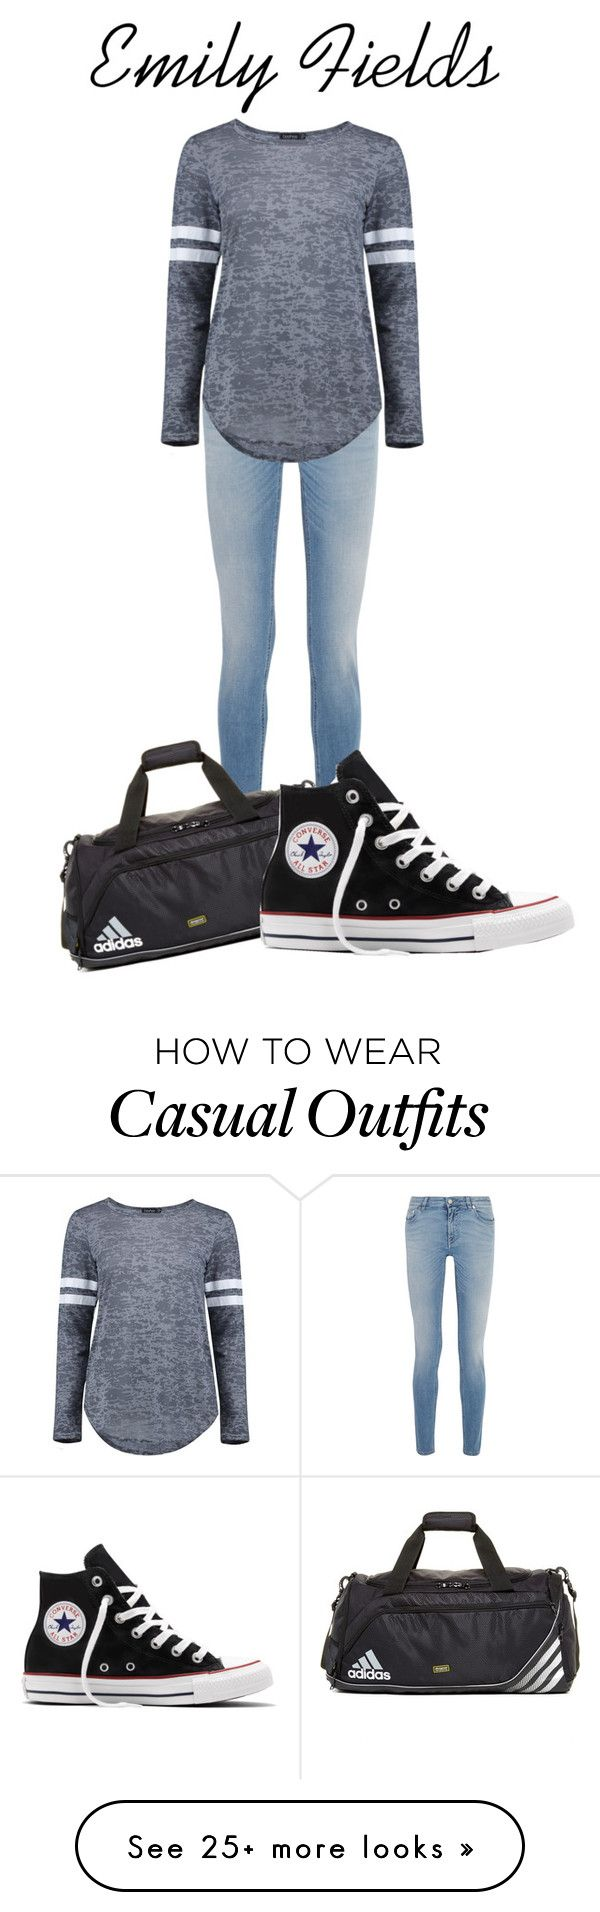 """Emily Fields: Casual"" by aquamarine03 on Polyvore featuring Givenchy, adidas, Converse and Boohoo"